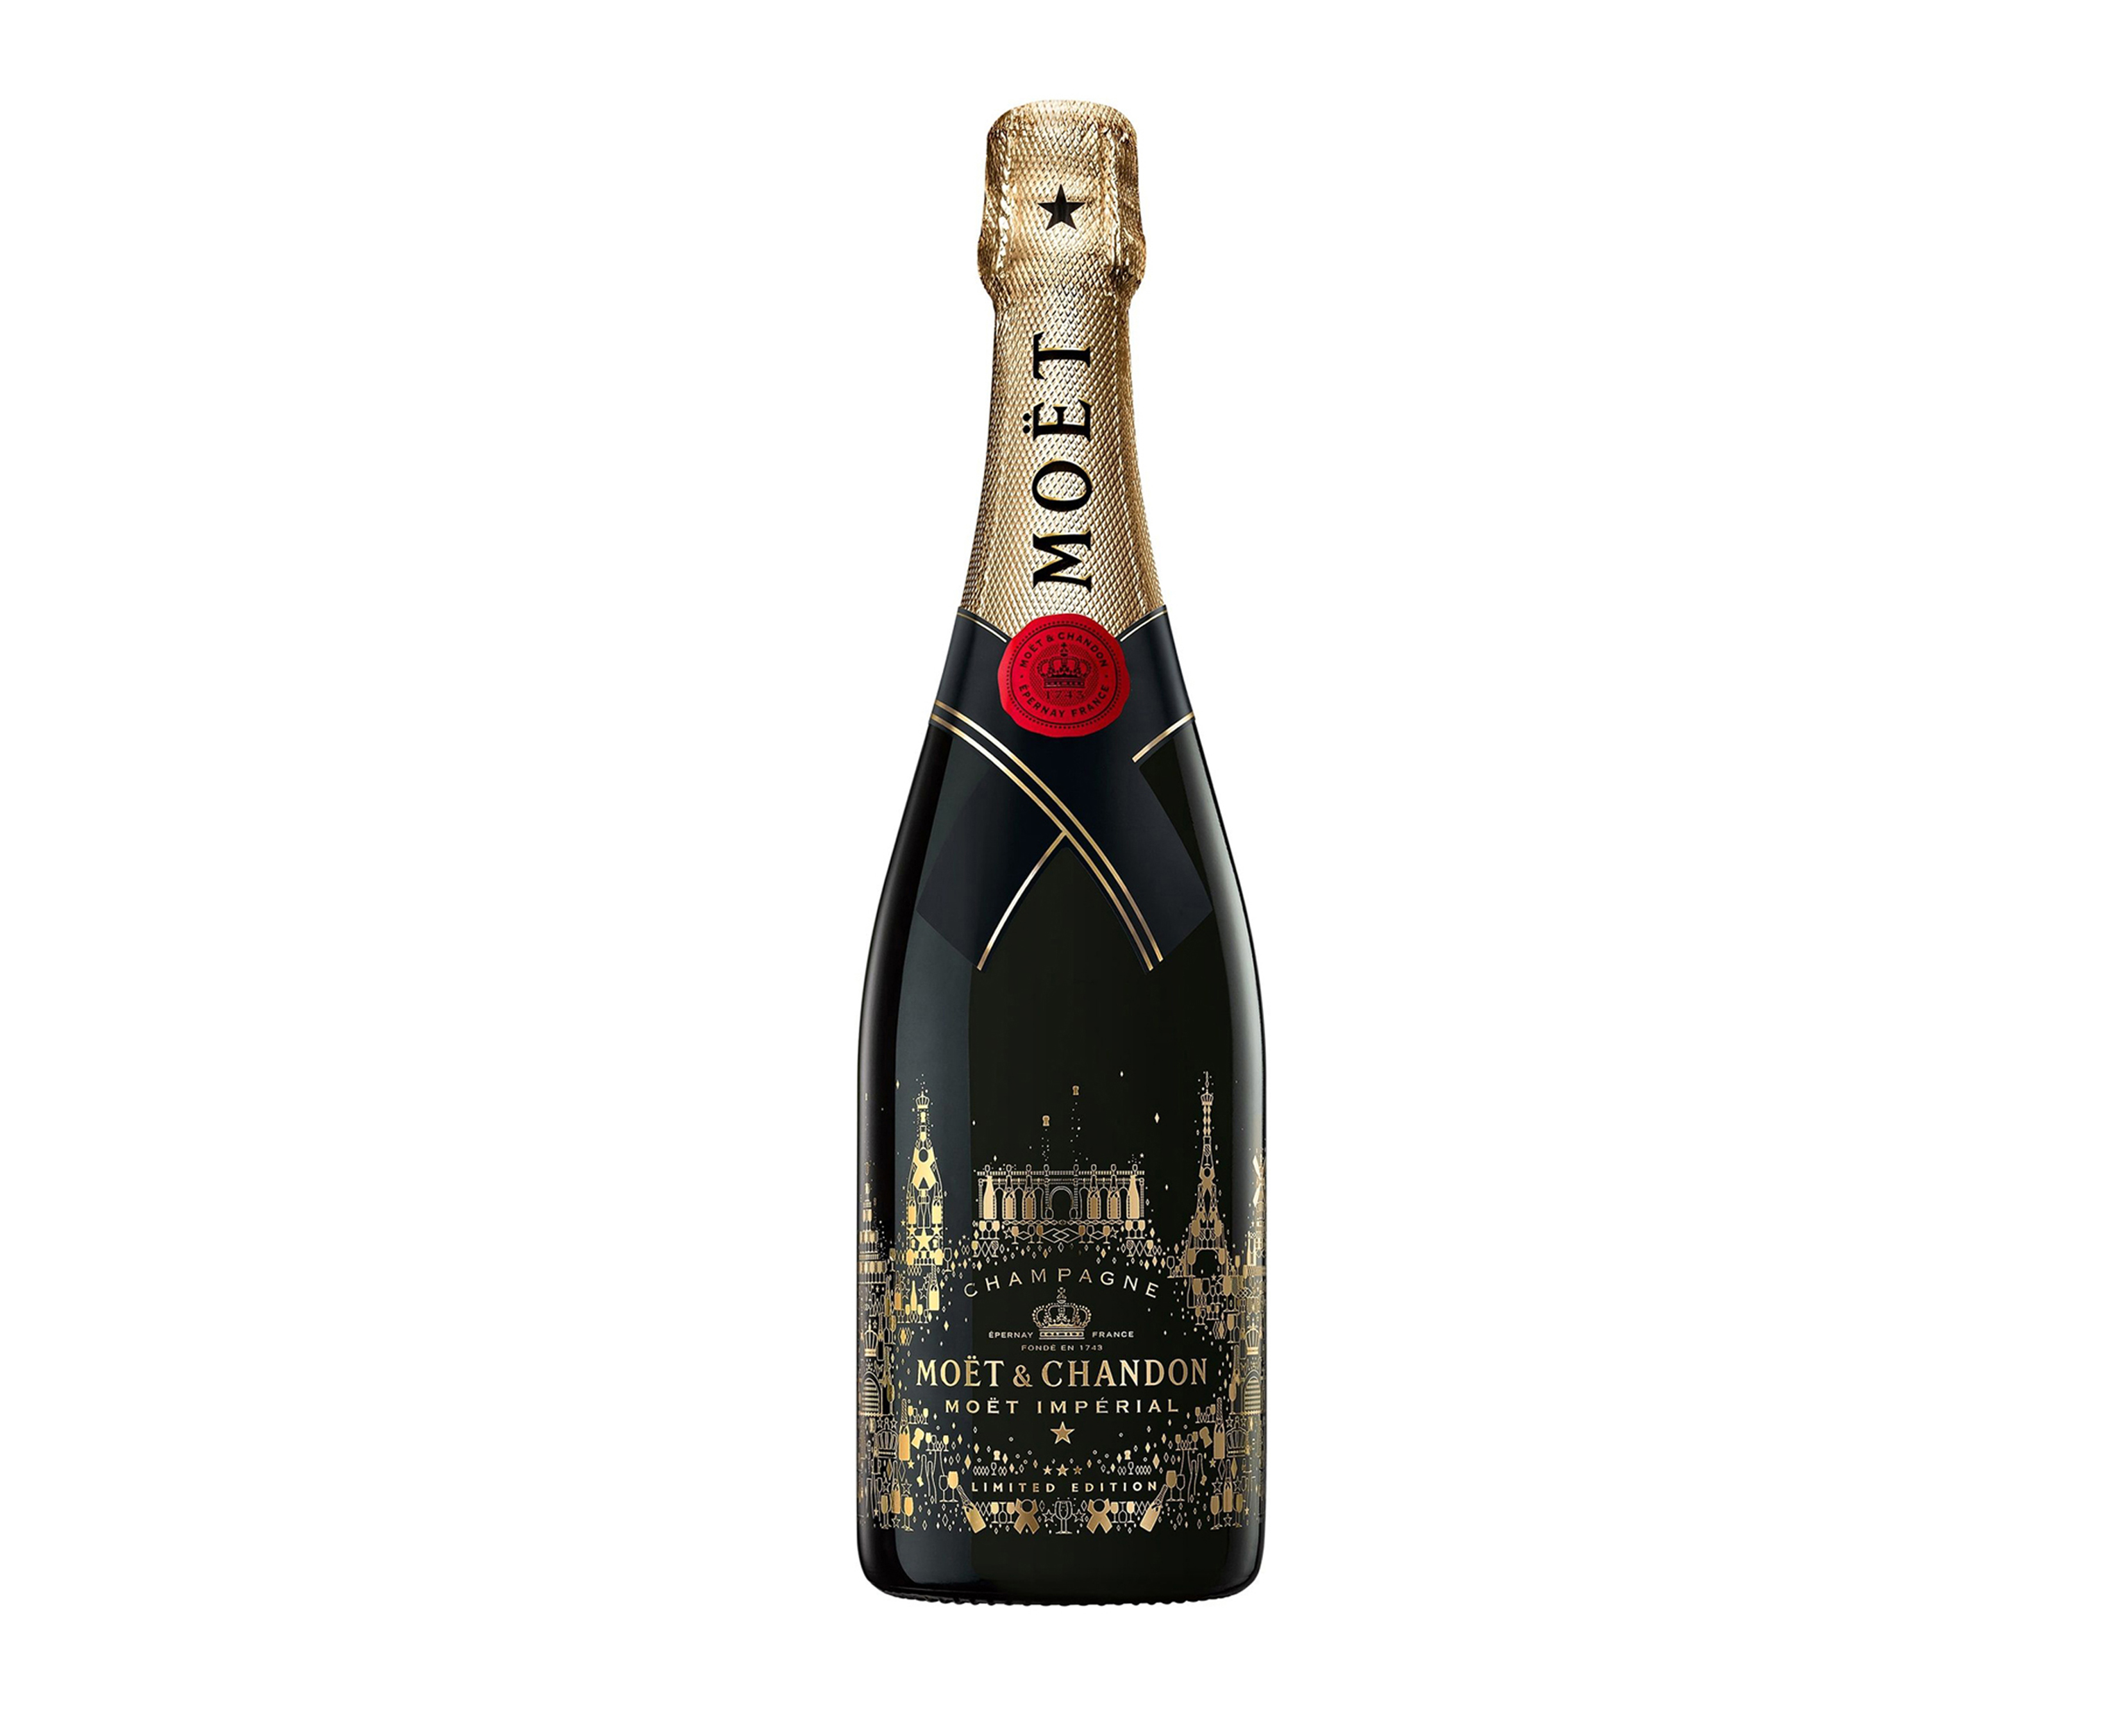 Moet & Chandon Imperial Gold limited edition